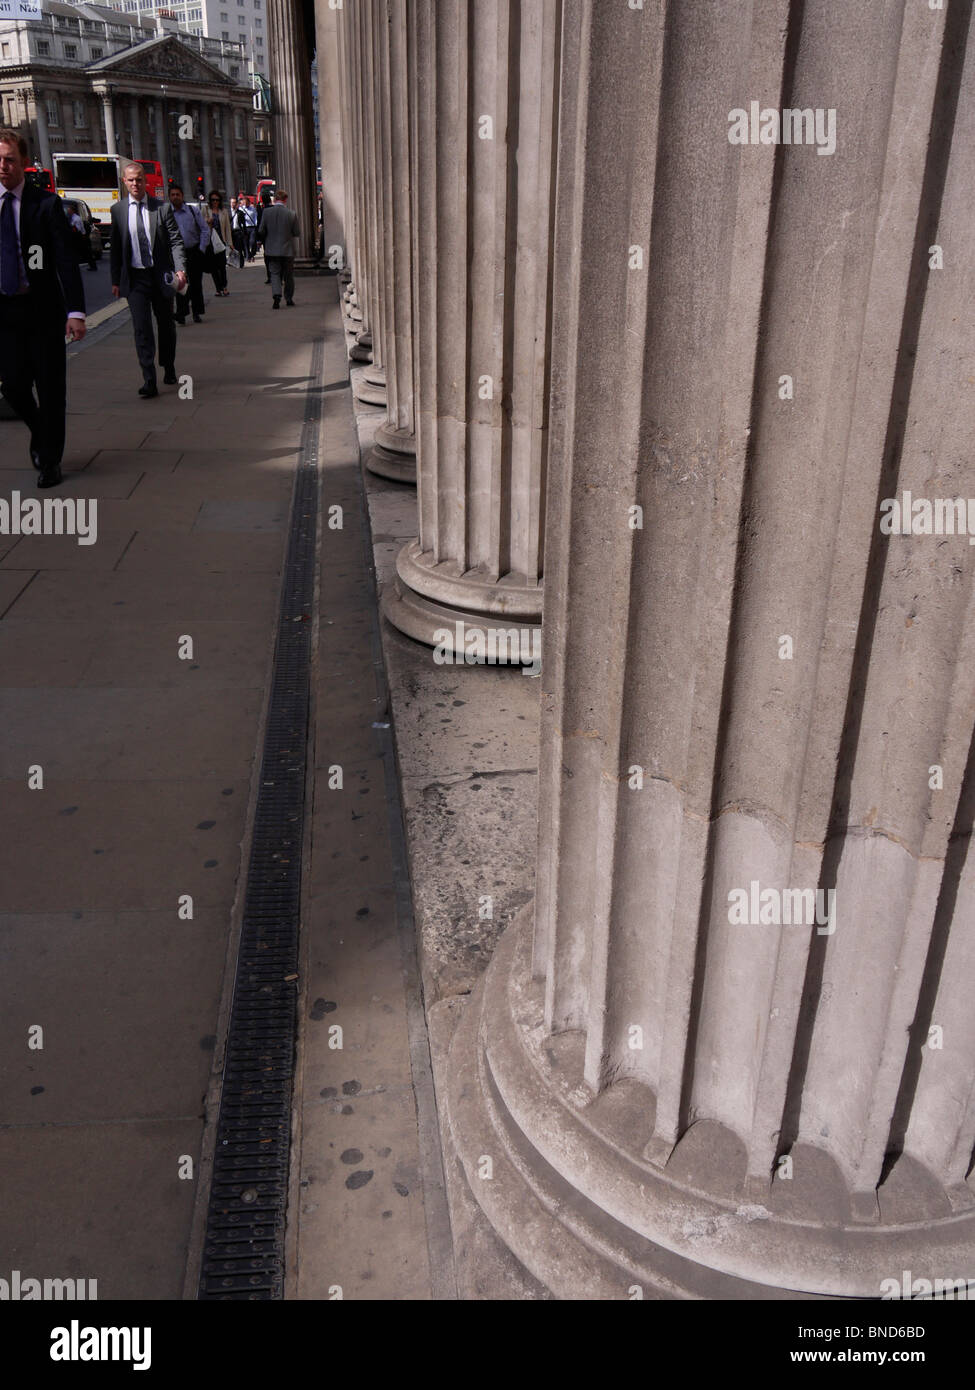 bank of england pillars with commuters walking past, london - Stock Image